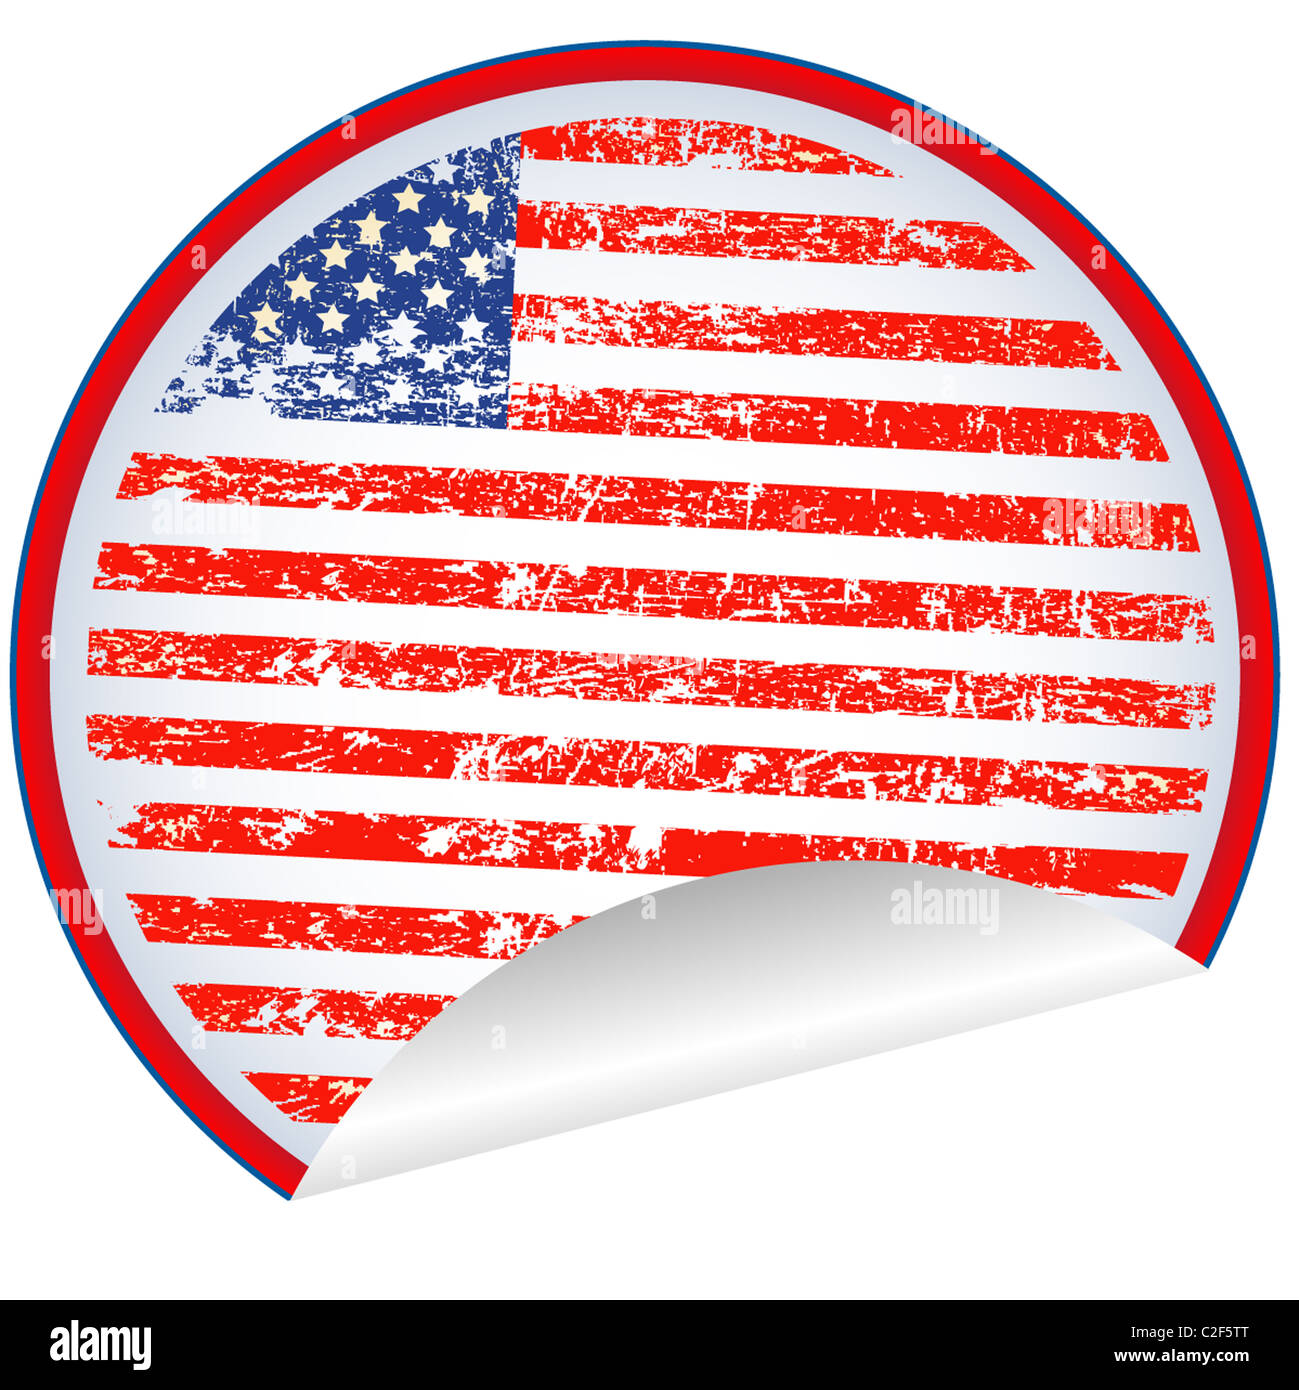 USA label - Stock Image